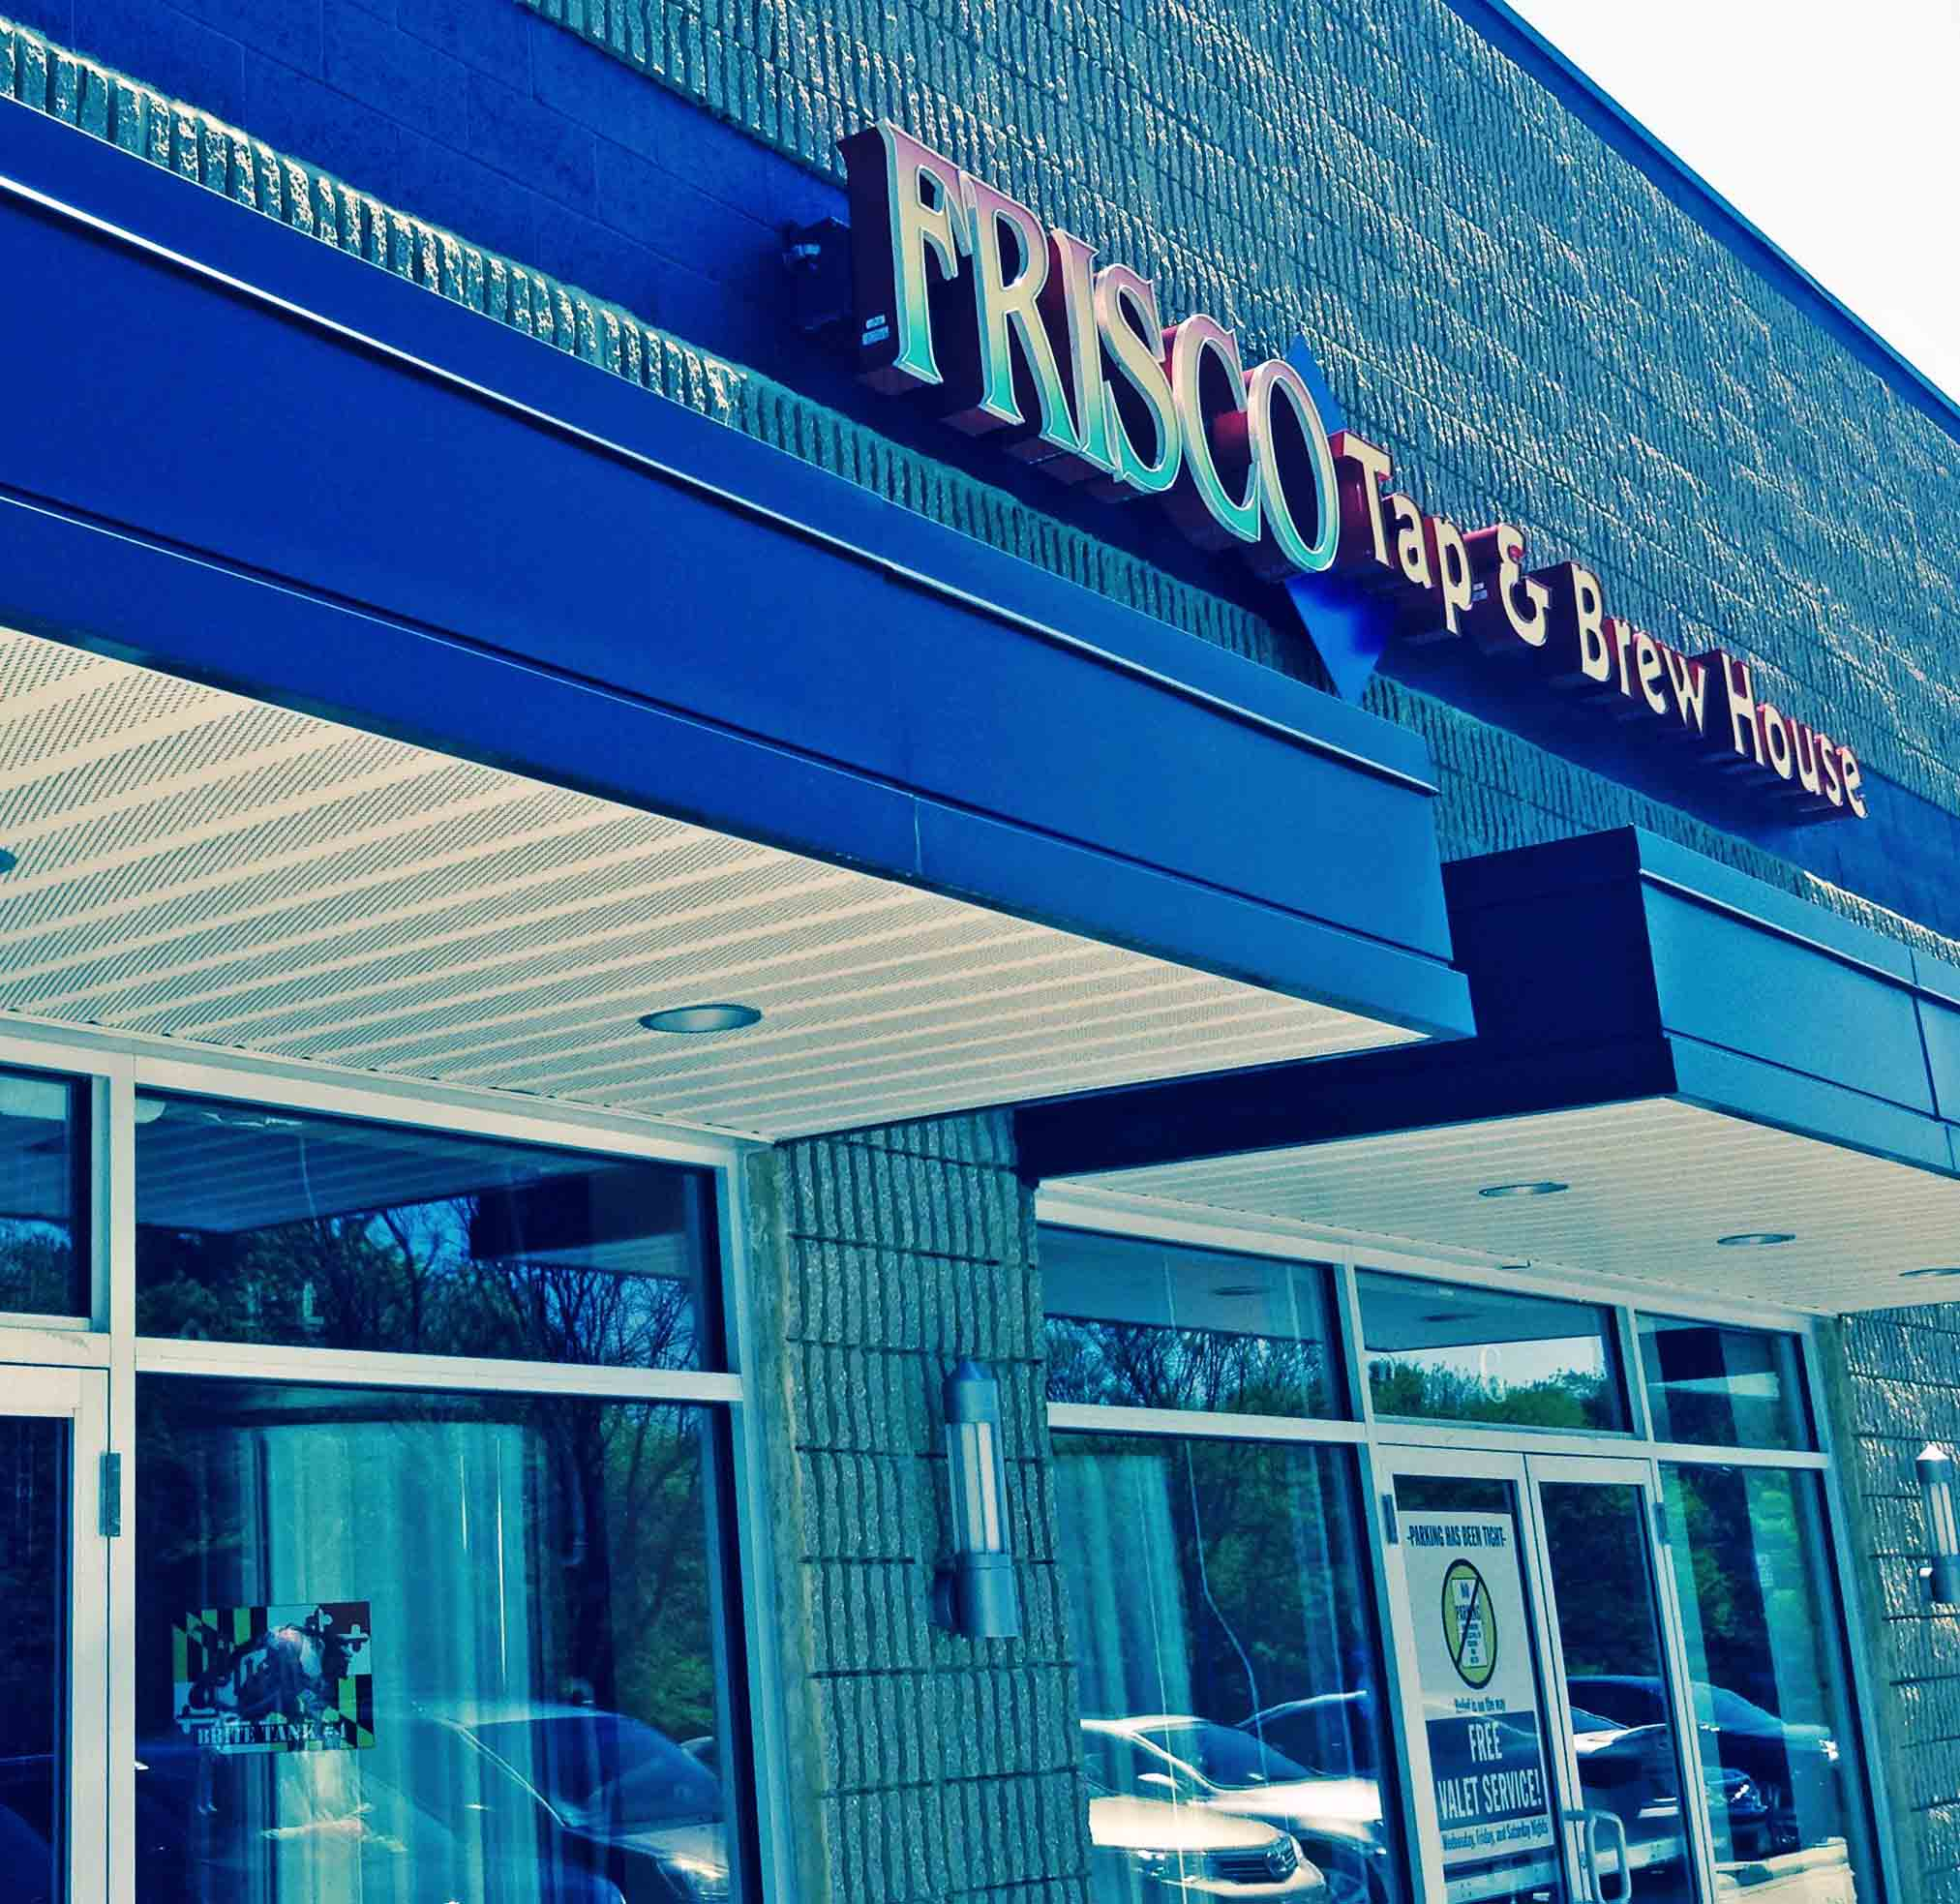 211. Frisco Taproom & Brewery, Columbia MD 2014